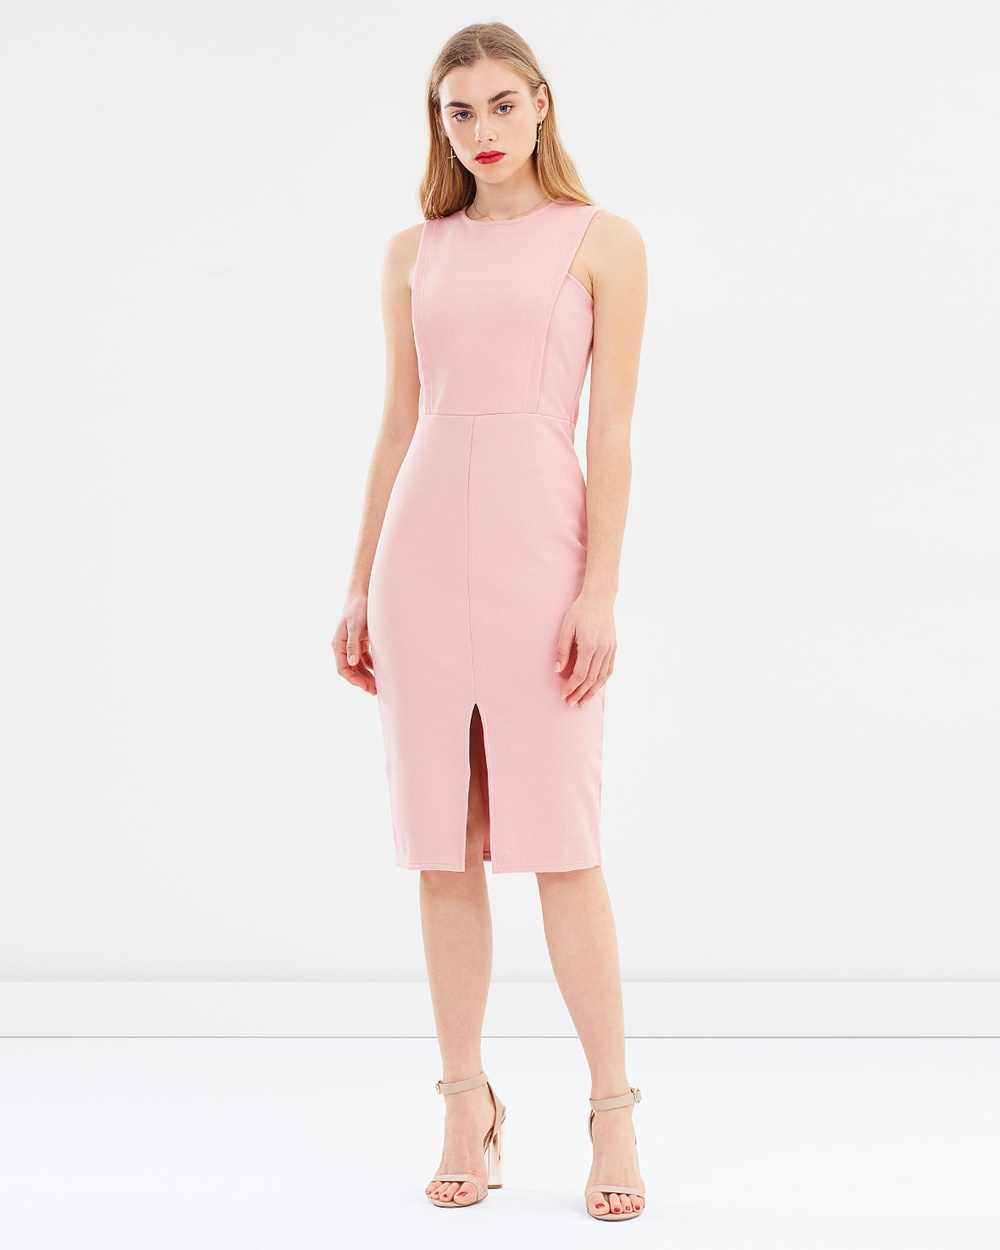 Miss Selfridge Square Front Body Con Dress Bodycon Dresses Pink Square Front Body-Con Dress